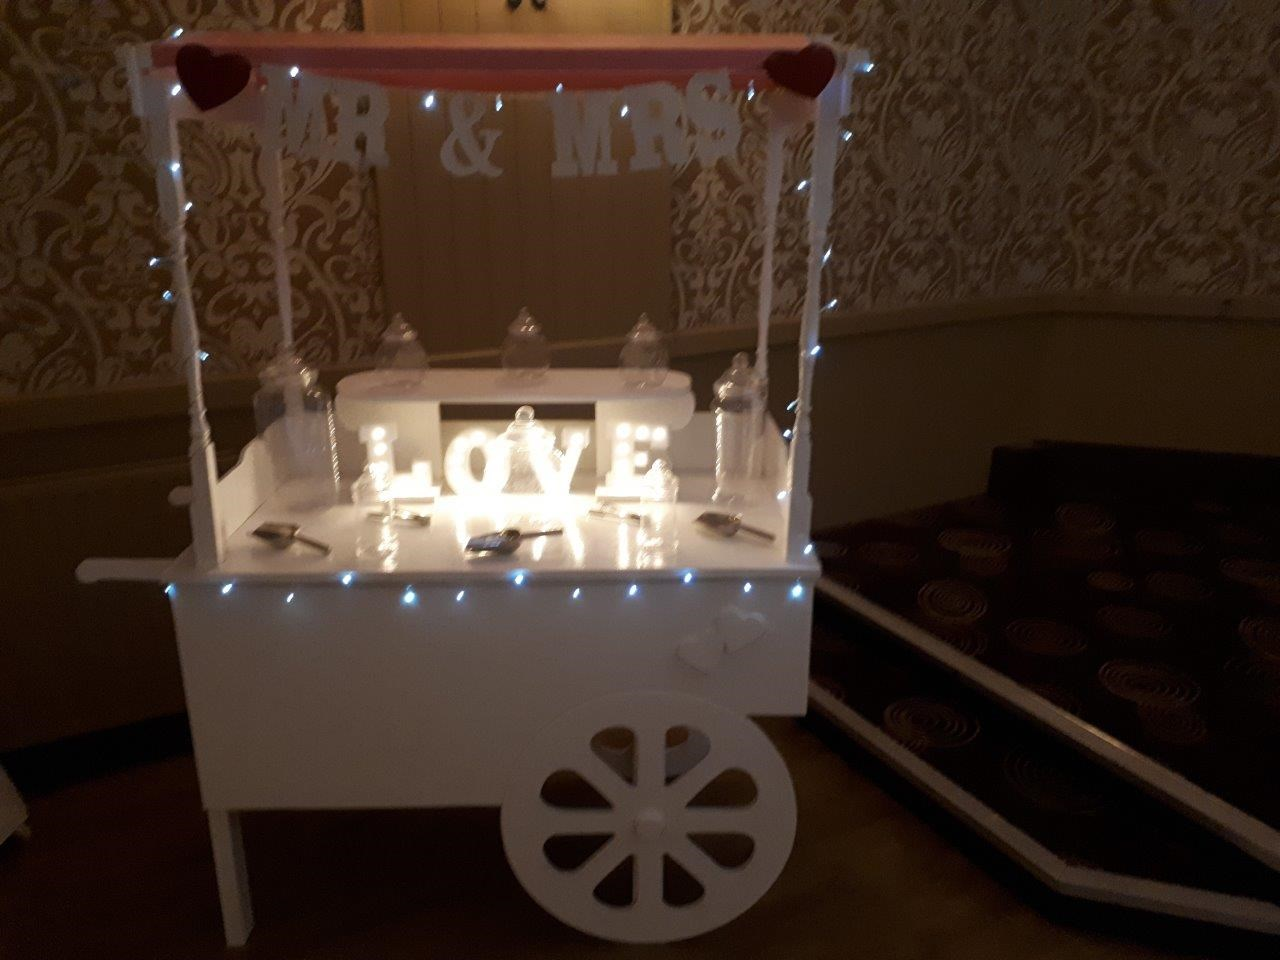 Sweetie Cart - Candy Floss, Popcorn, Slush Puppies and Side Stalls